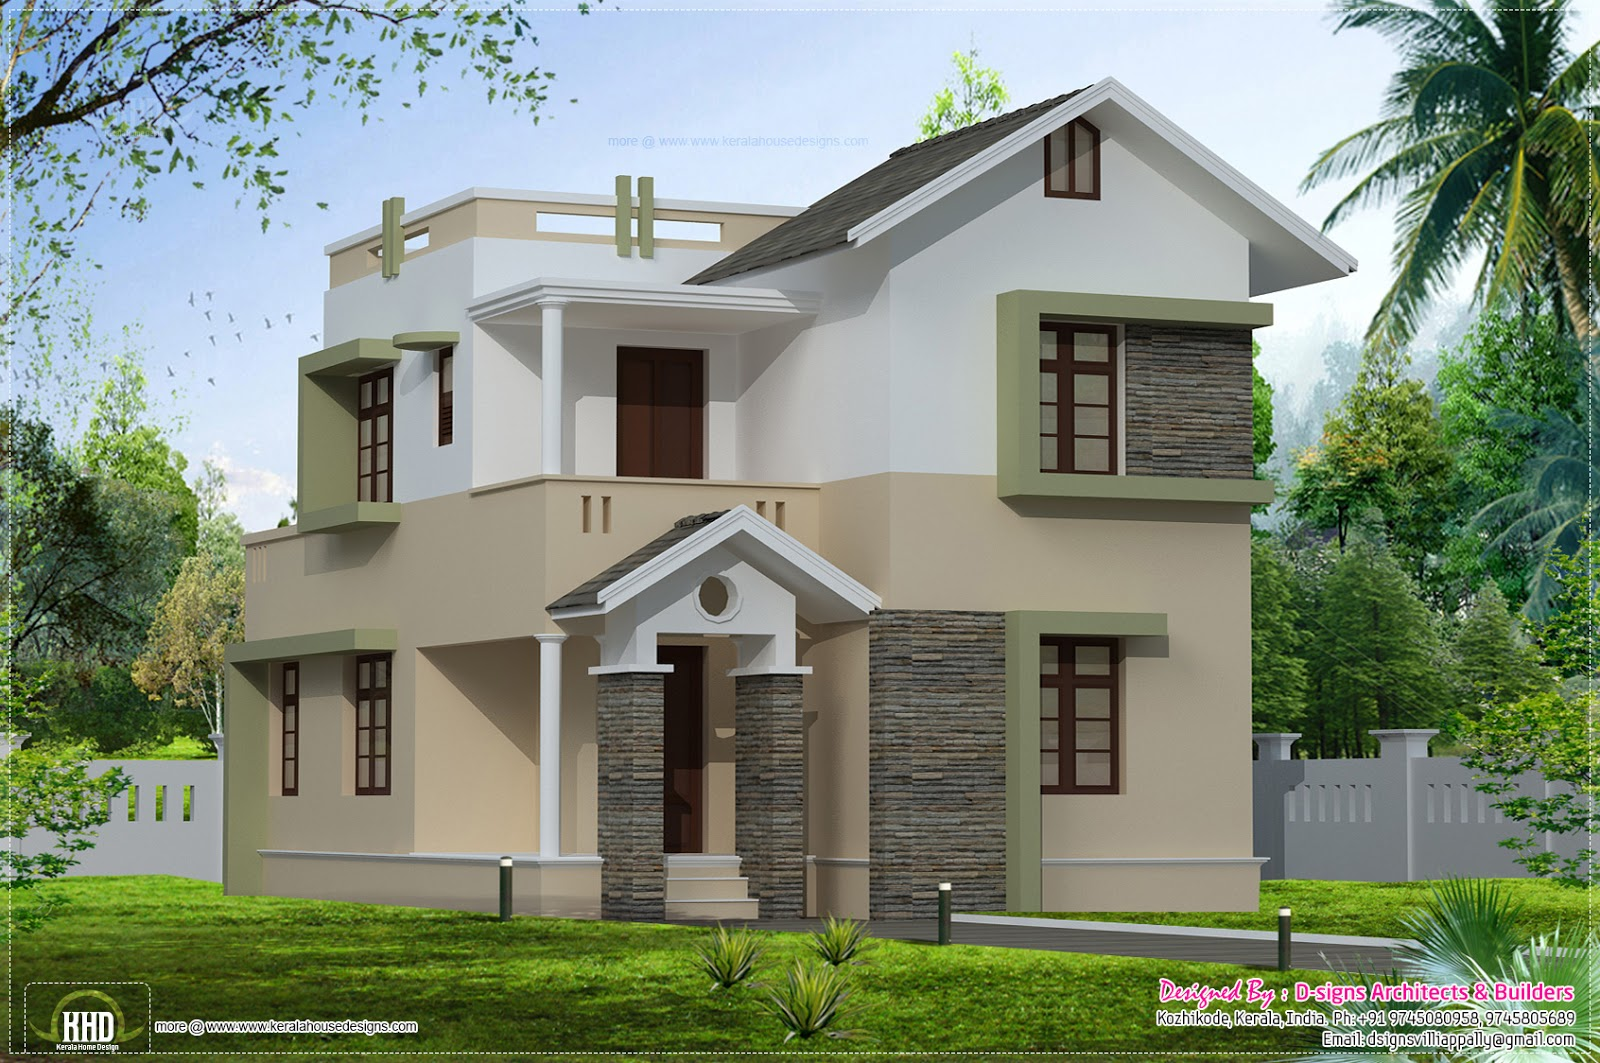 Front elevation of small houses home design and decor for Kerala style villa plans